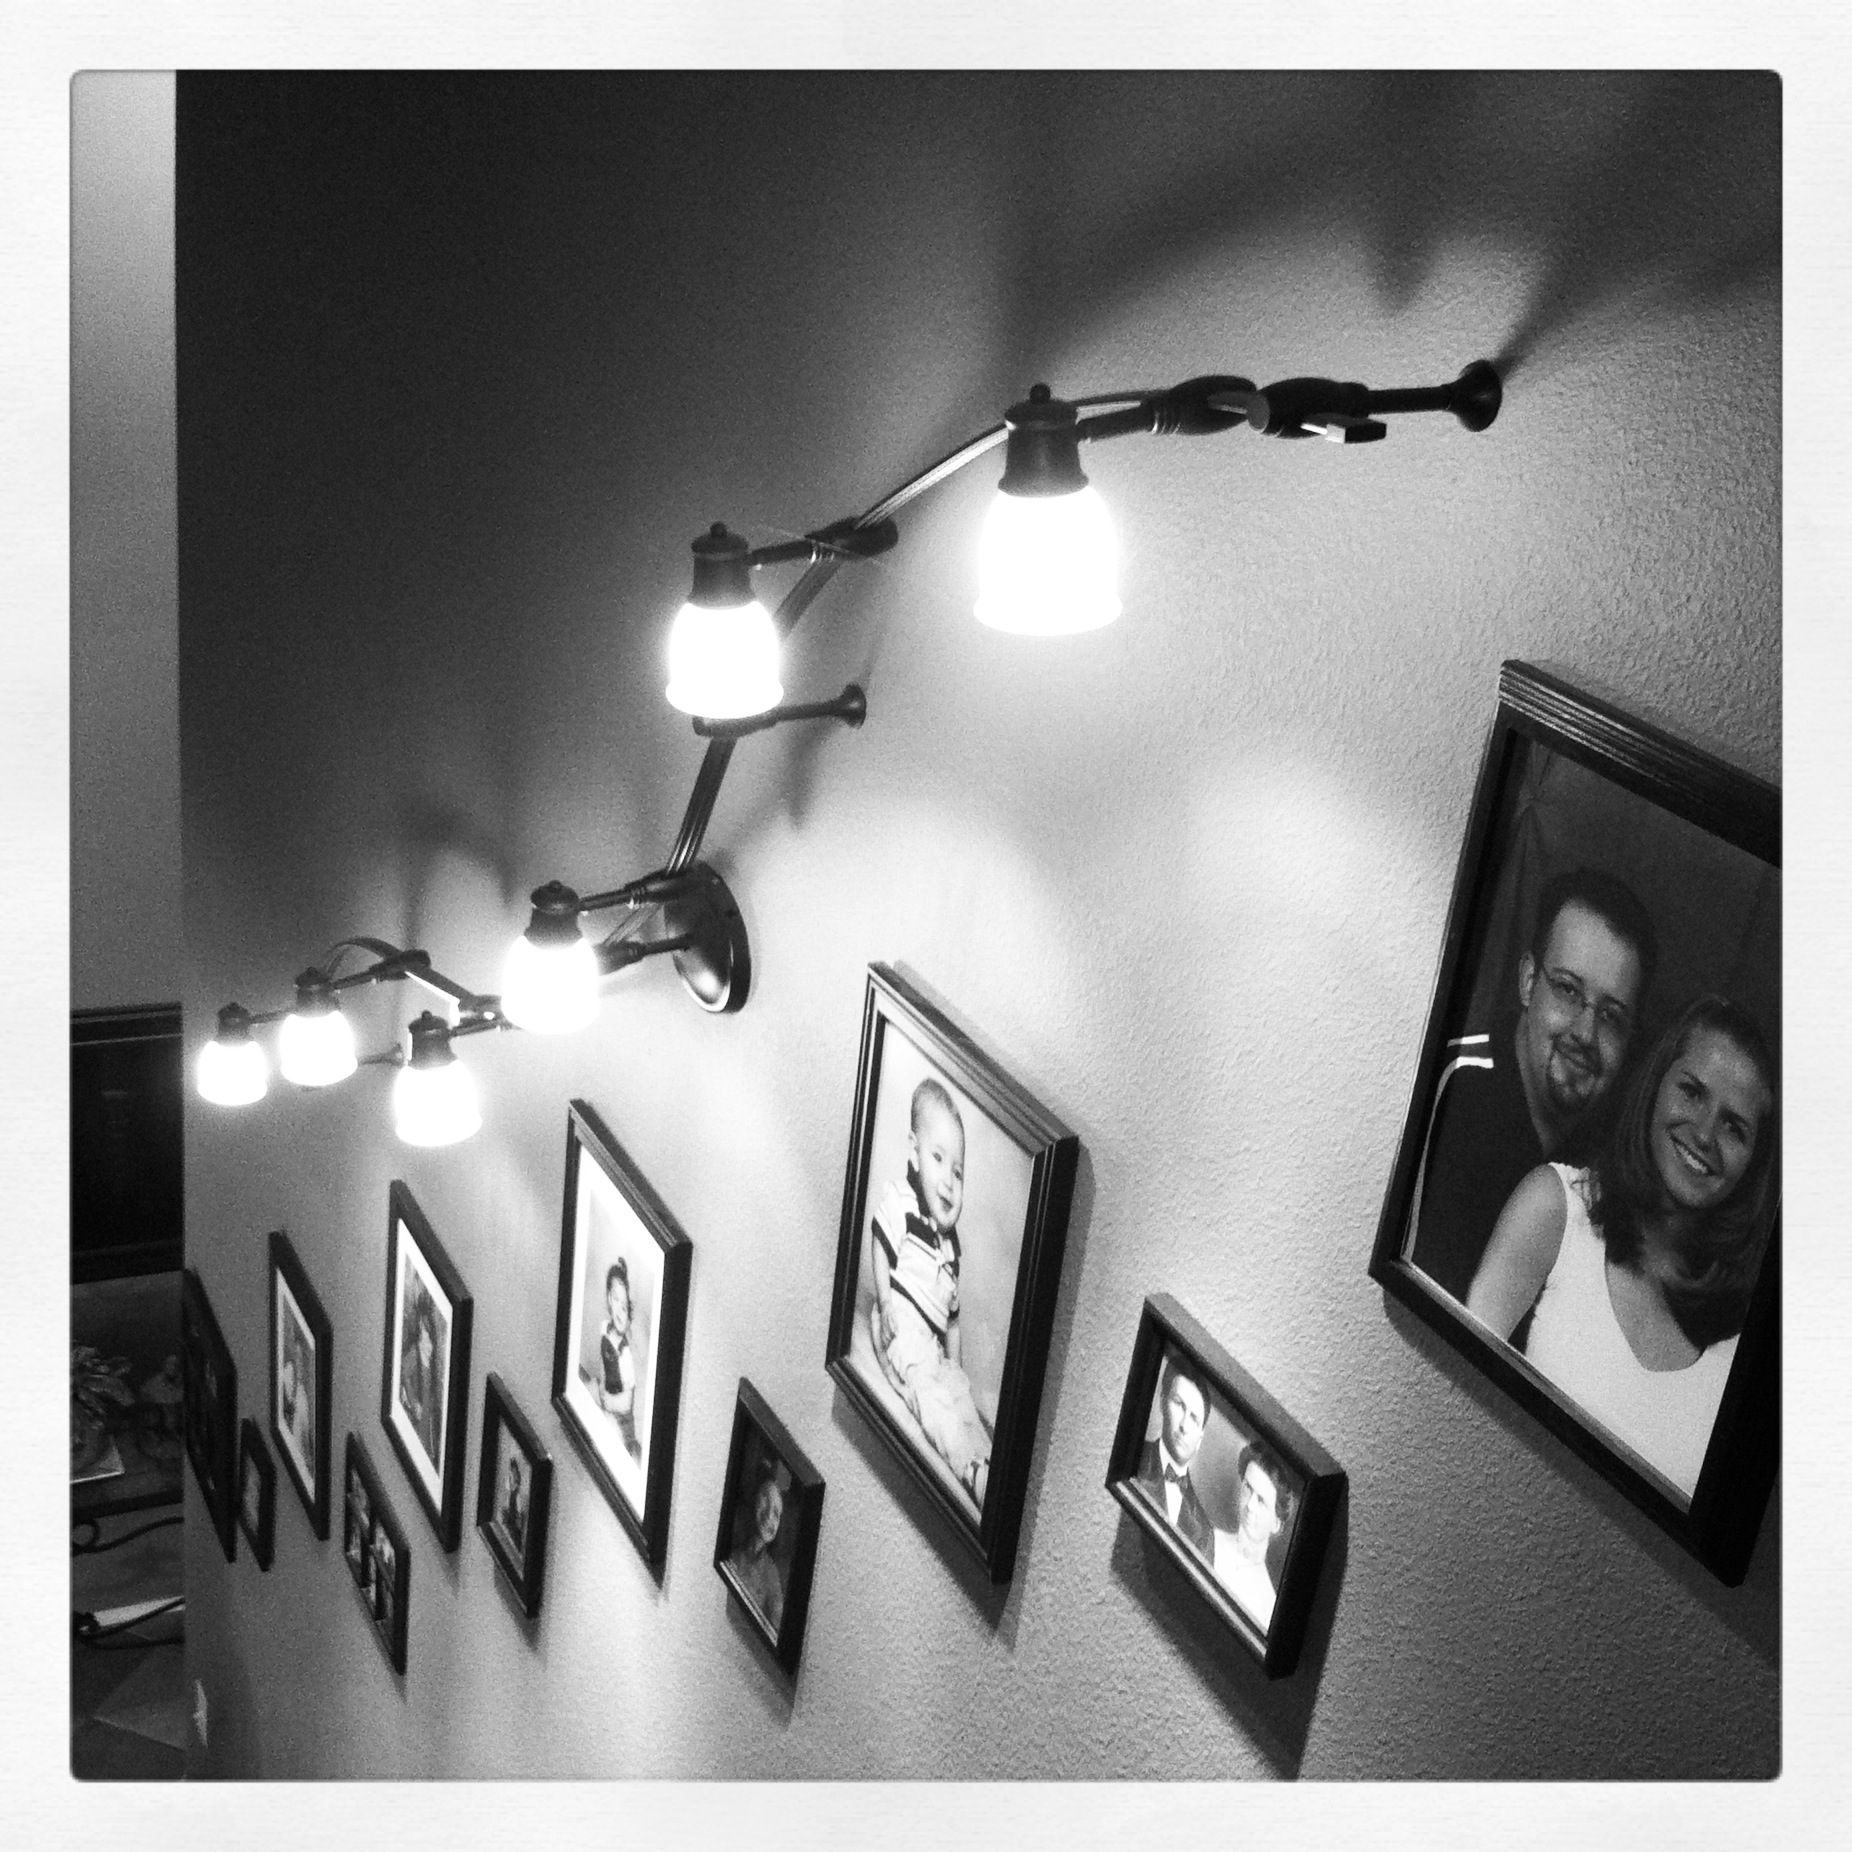 Stairway Lighting Fixtures: Track Lighting Up A Long Stairway Or Hallway. Gives Lots